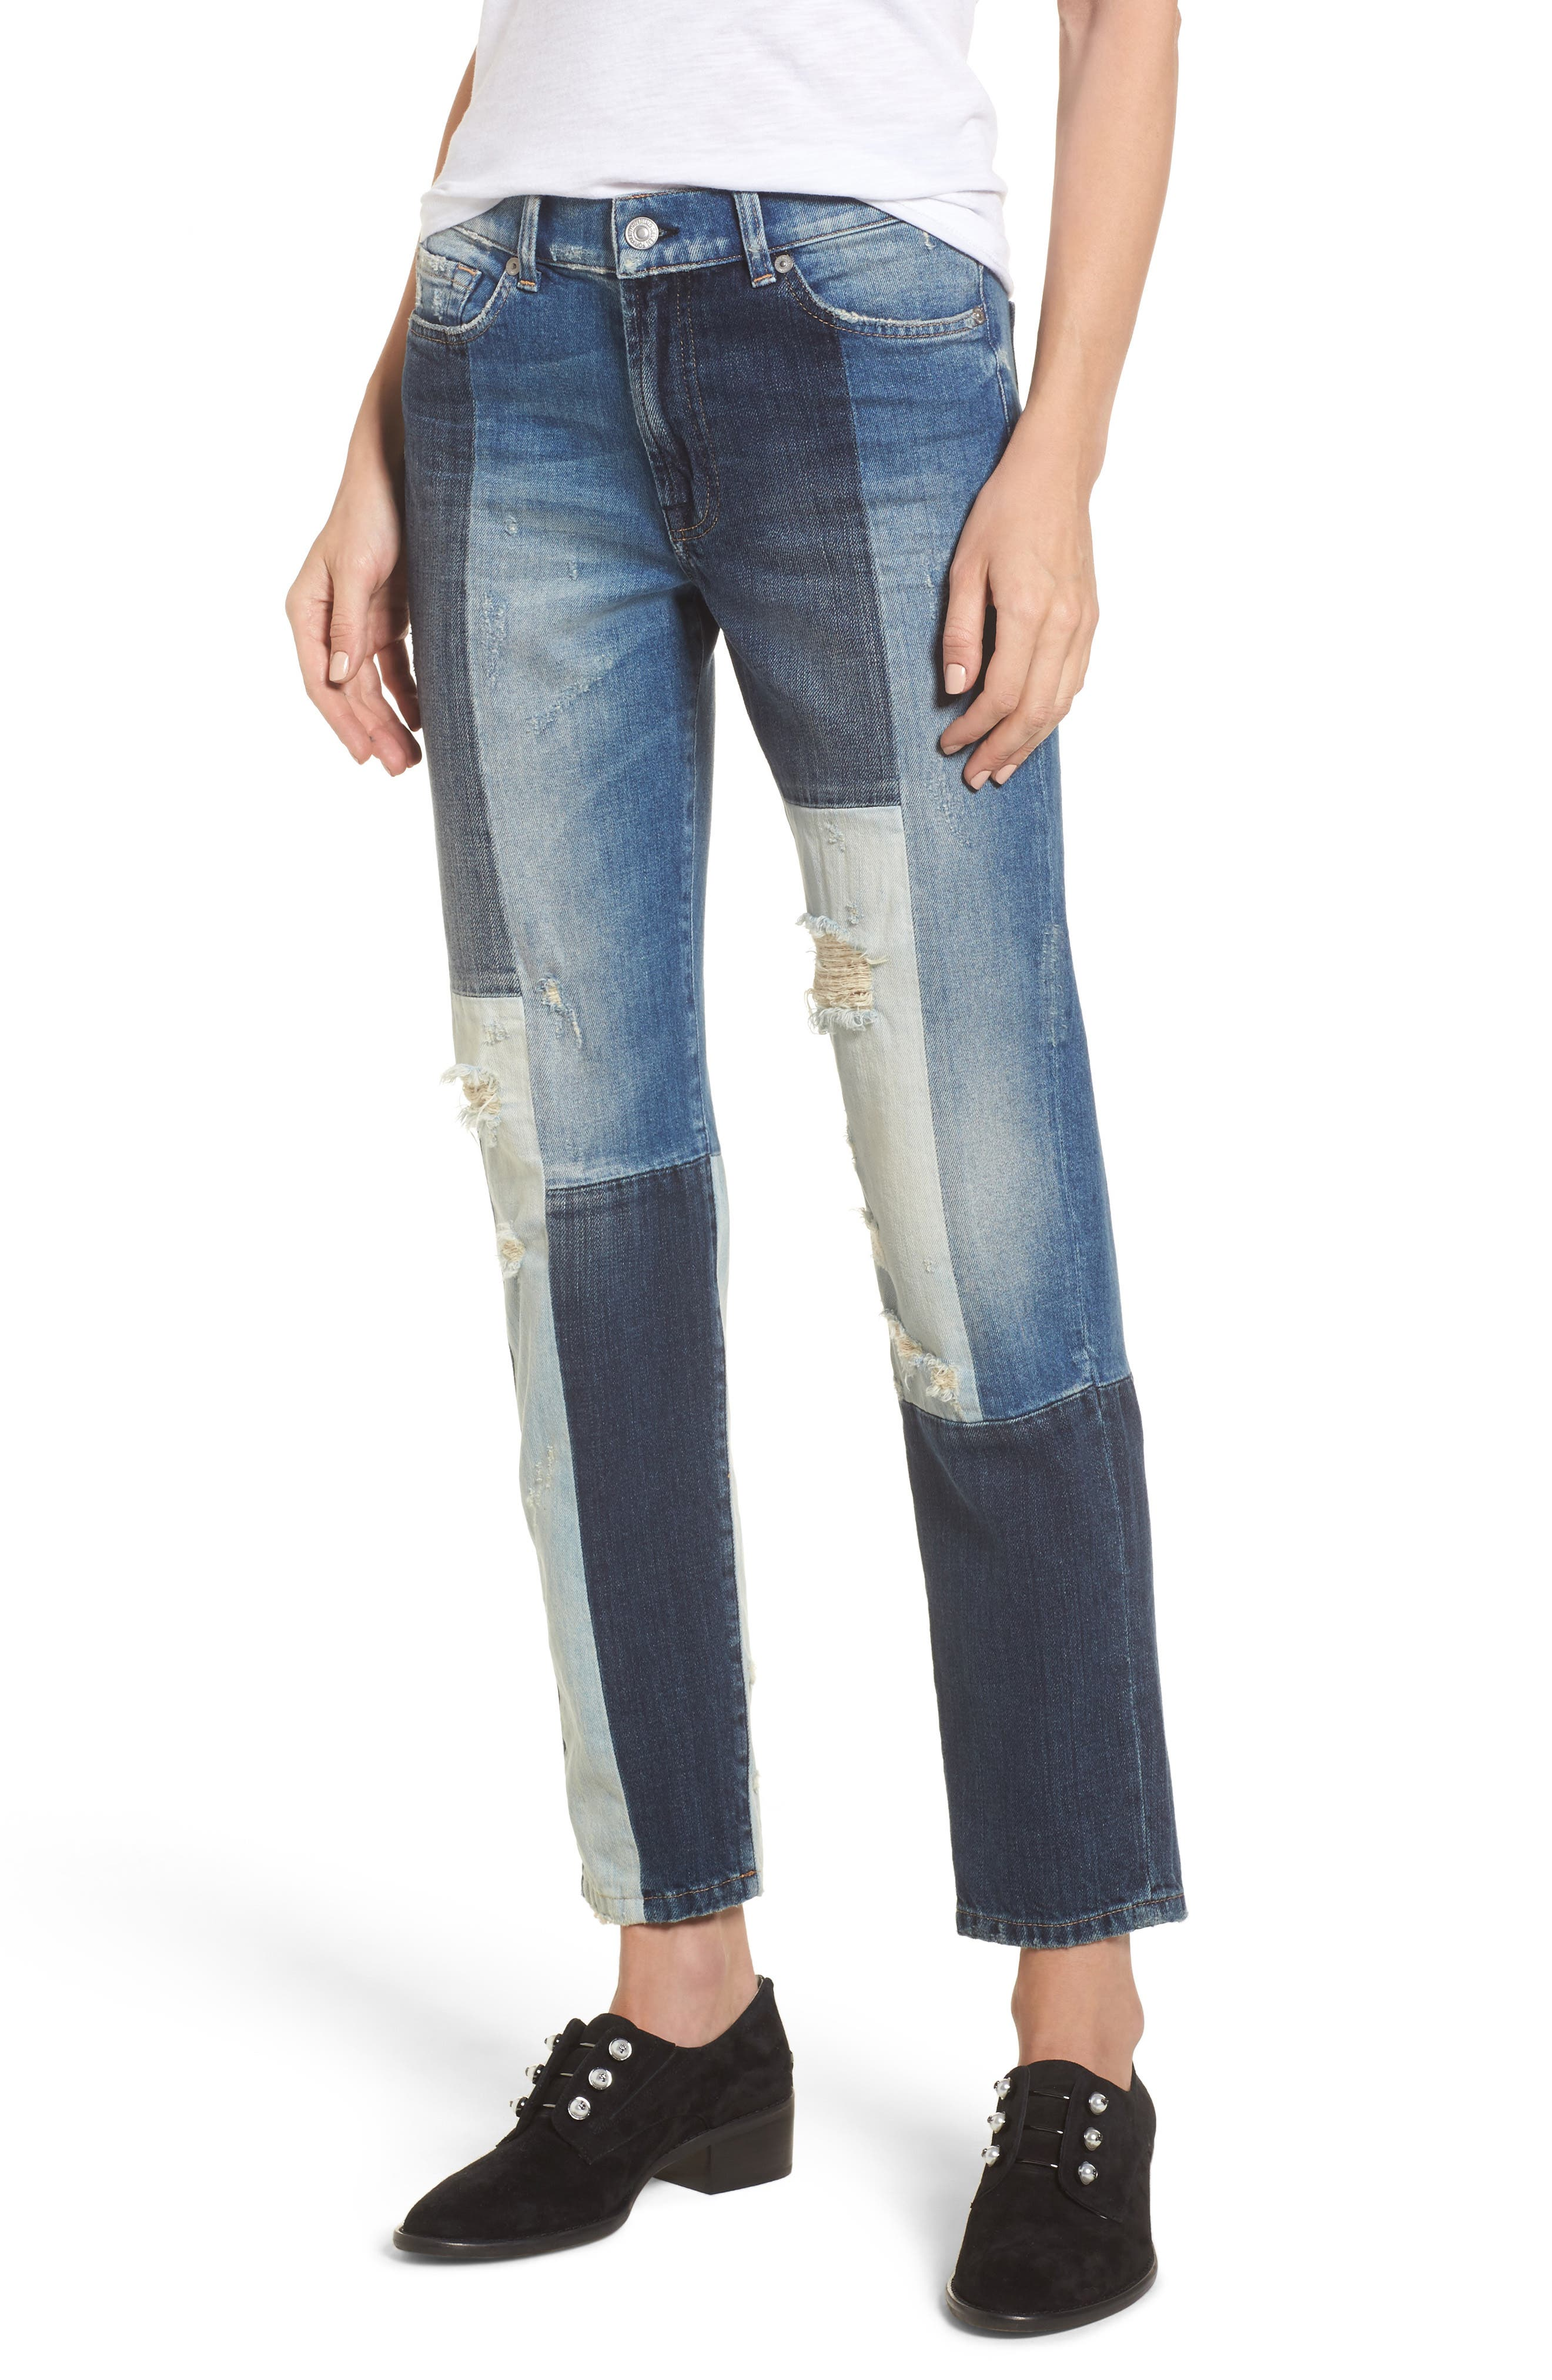 Alternate Image 1 Selected - 7 For All Mankind® High Waist Patched Slim Jeans (Indigo Patches)